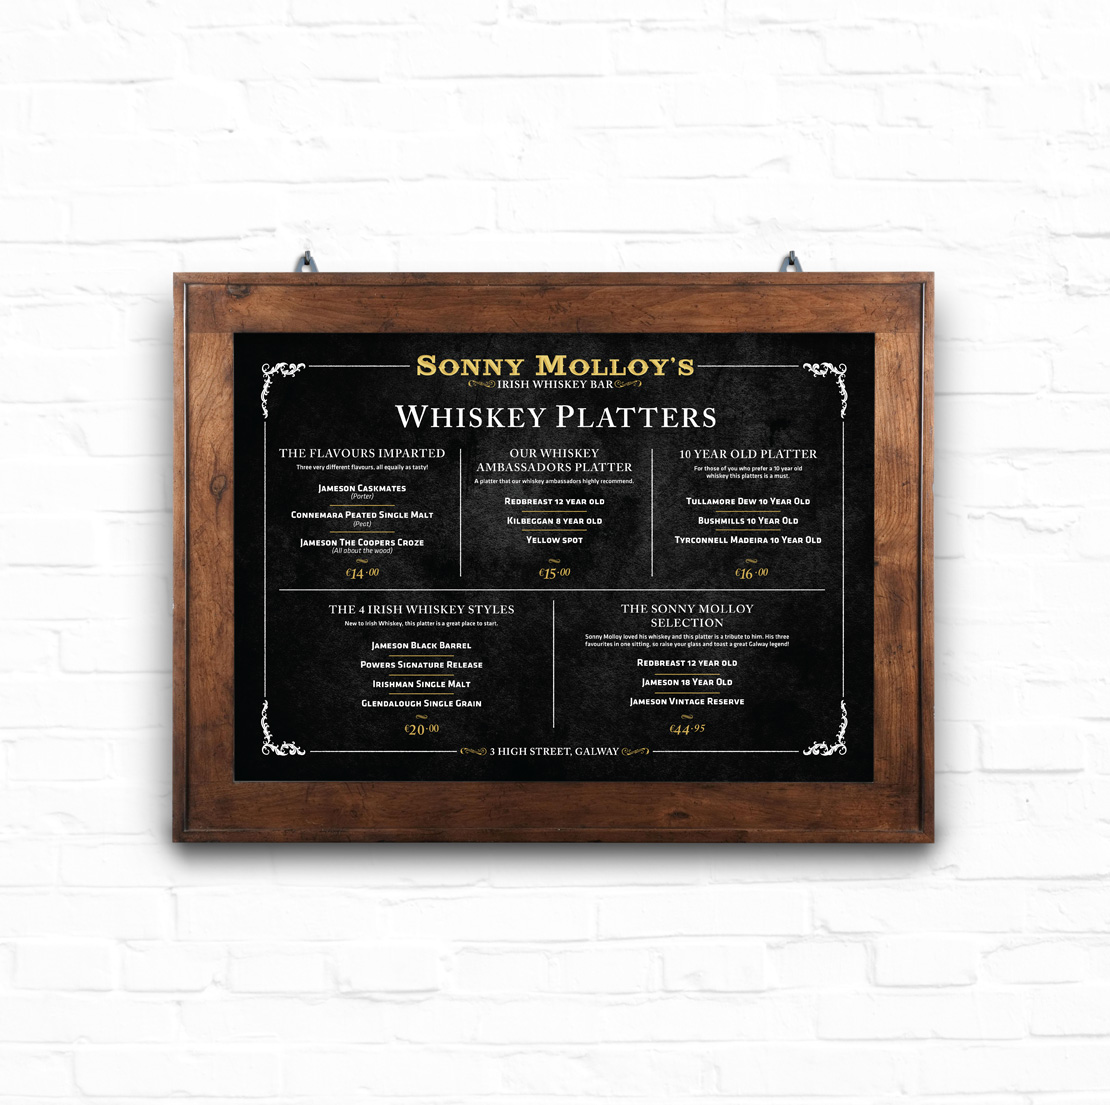 Sonny Molloy's whiskey platter menu design for bar wall